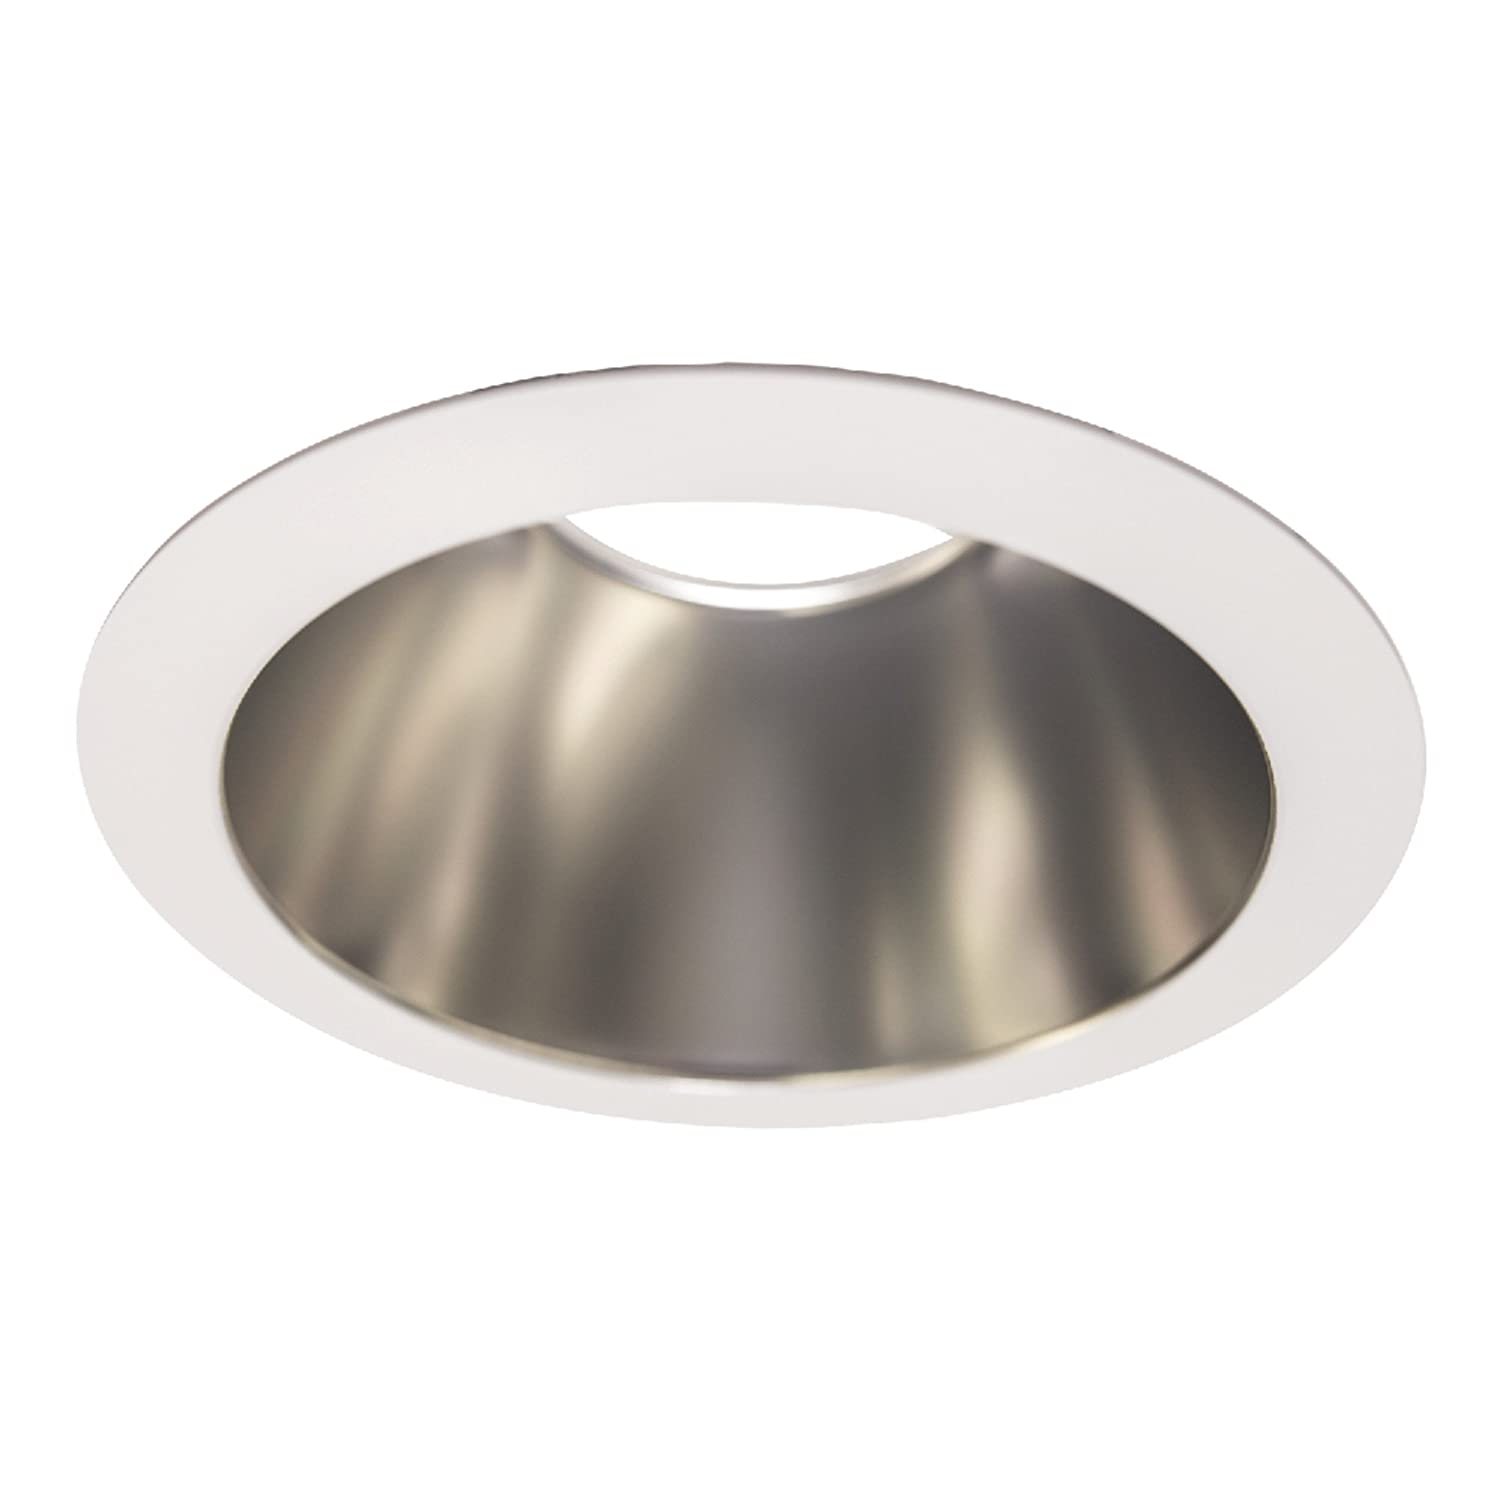 Specular Clear Vertical Halo 61VCWF LED Reflector 6 6 Eaton Lighting Division White Flange Self Flanged